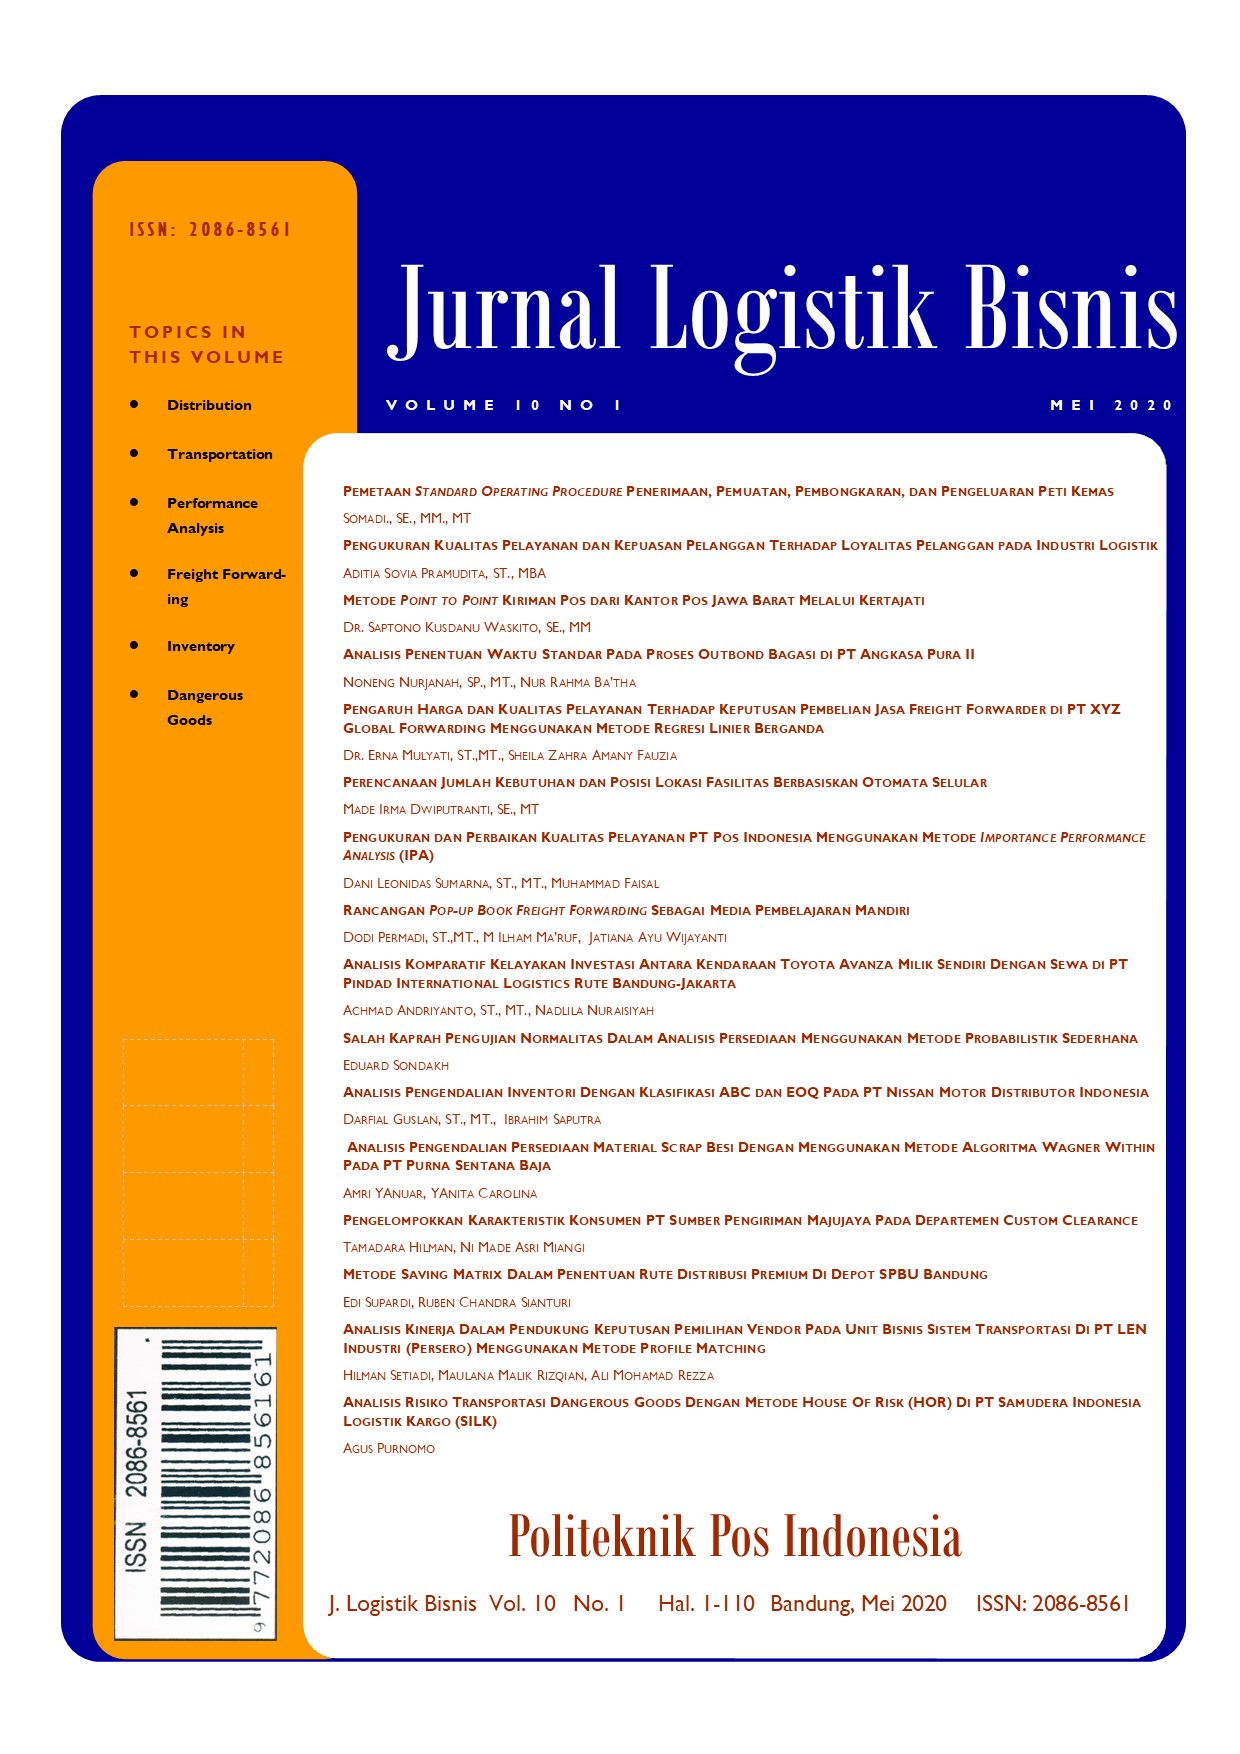 Jurnal Logistik Bisnis Volume 10 No.1 Mei 2020